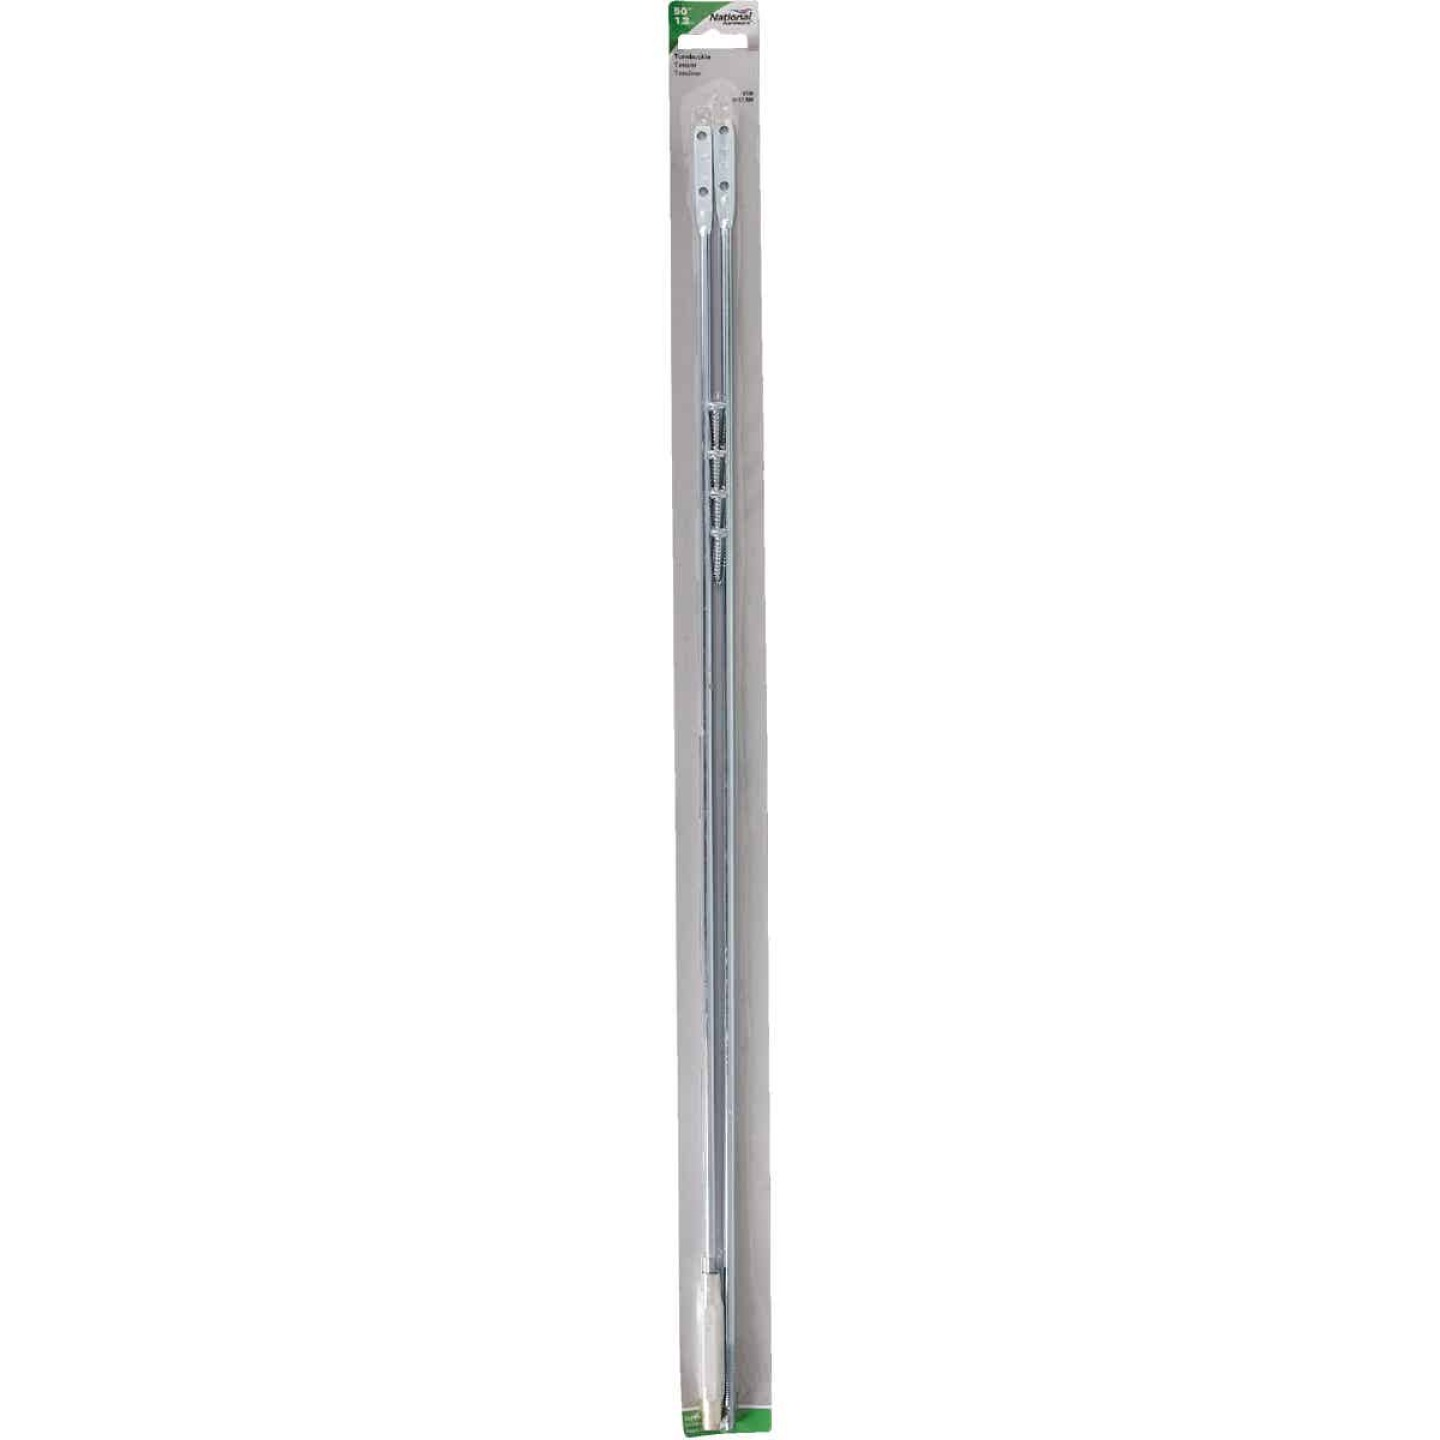 National 50 In. Zinc Screen Door Turnbuckle Image 2